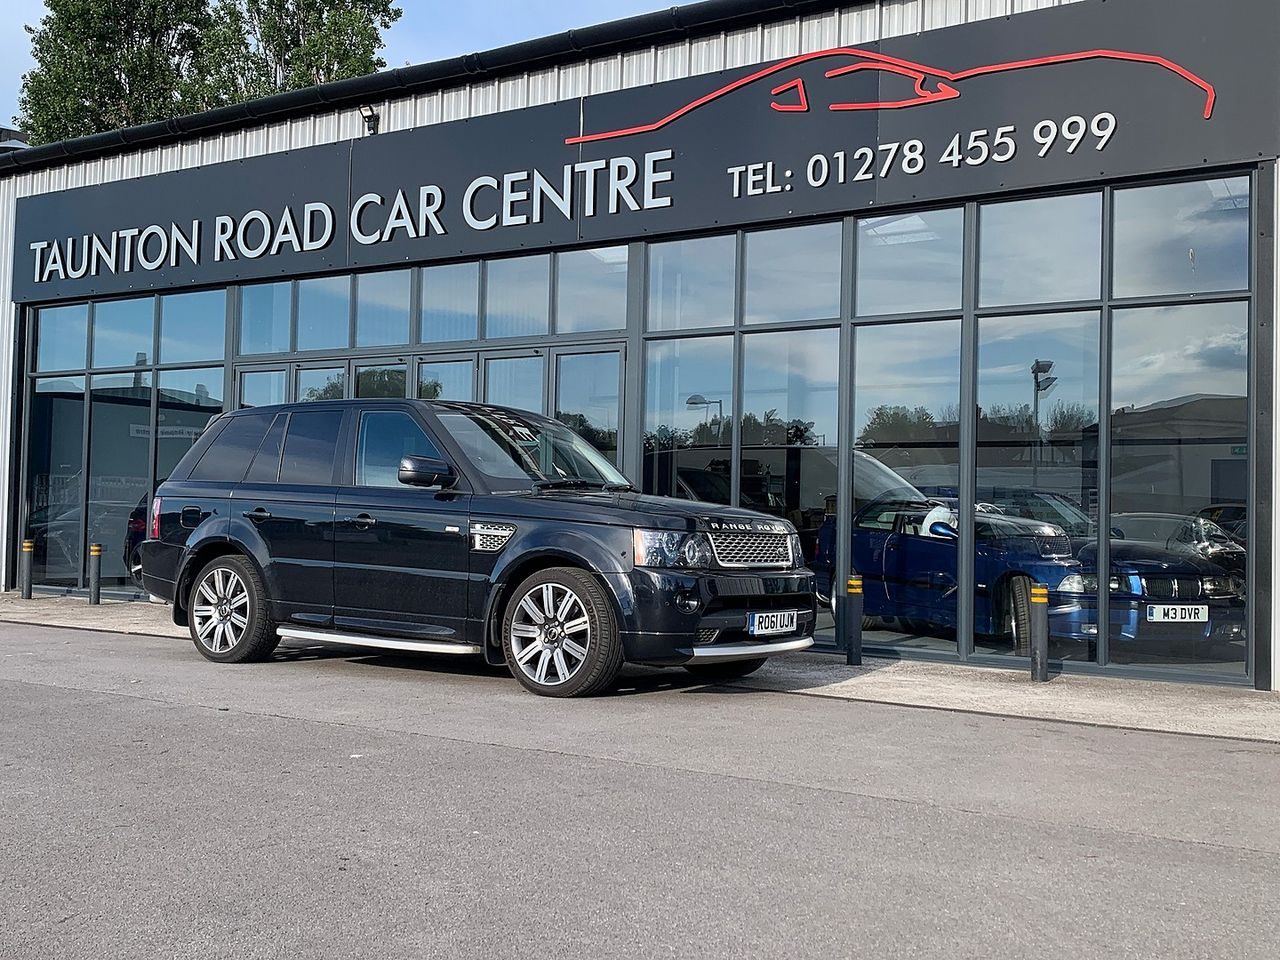 2011 LAND ROVER Range Rover Sport 3.0 SDV6 Autobiography Sport - Picture 1 of 7